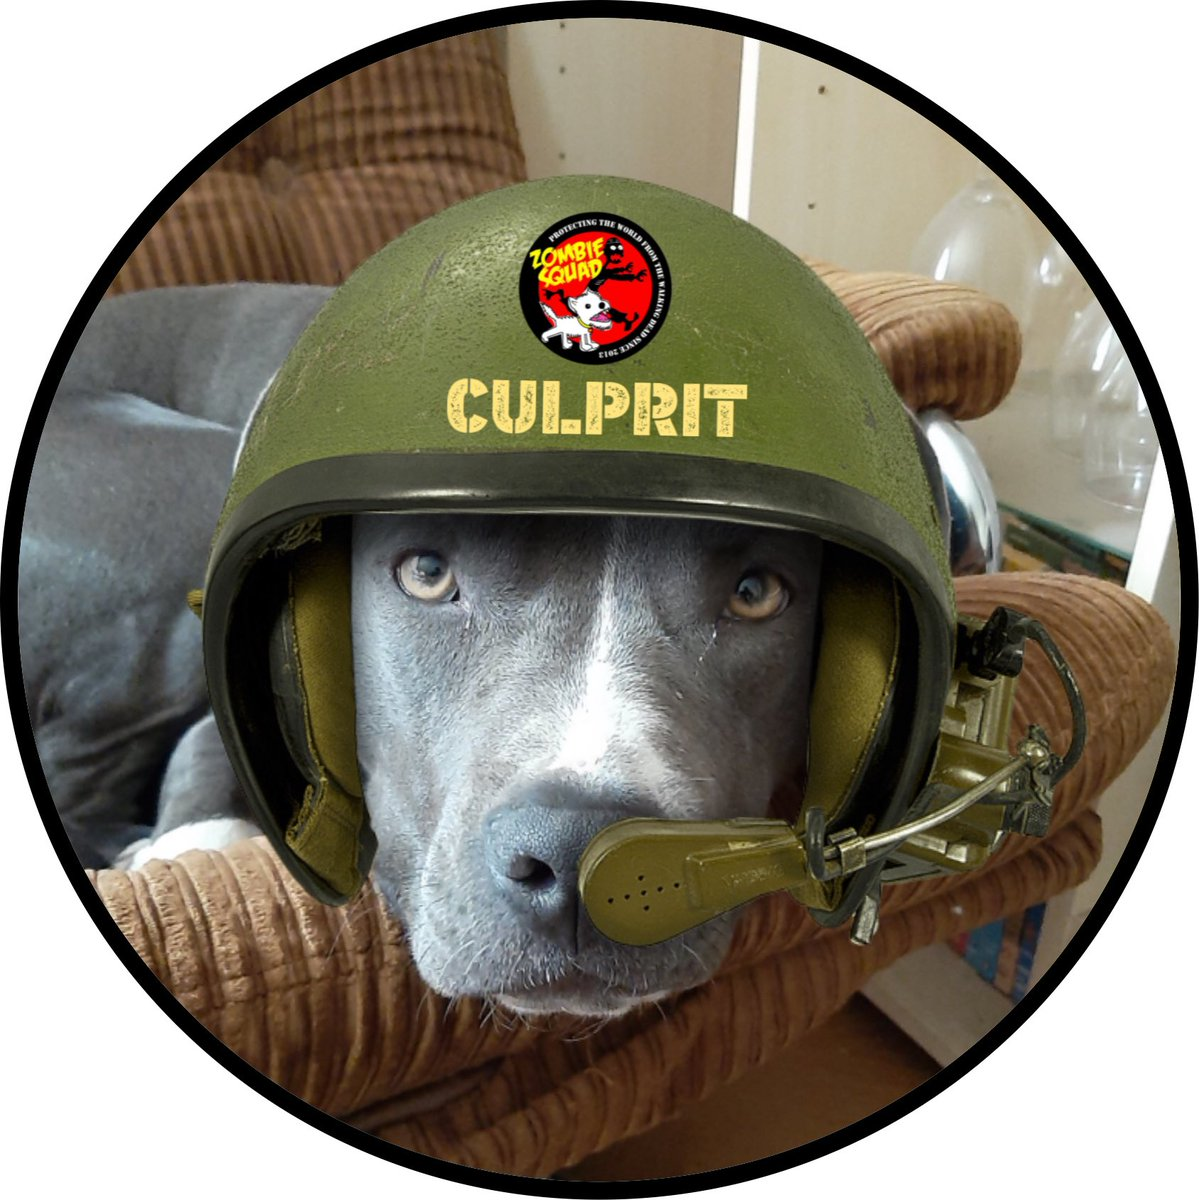 Welcome to #ZSHQ Pvt Culprit @CulpritPitbull we have prepared your patrol kit, bark when you need support from @ZombieSquadHQ https://t.co/u93FBu80M2